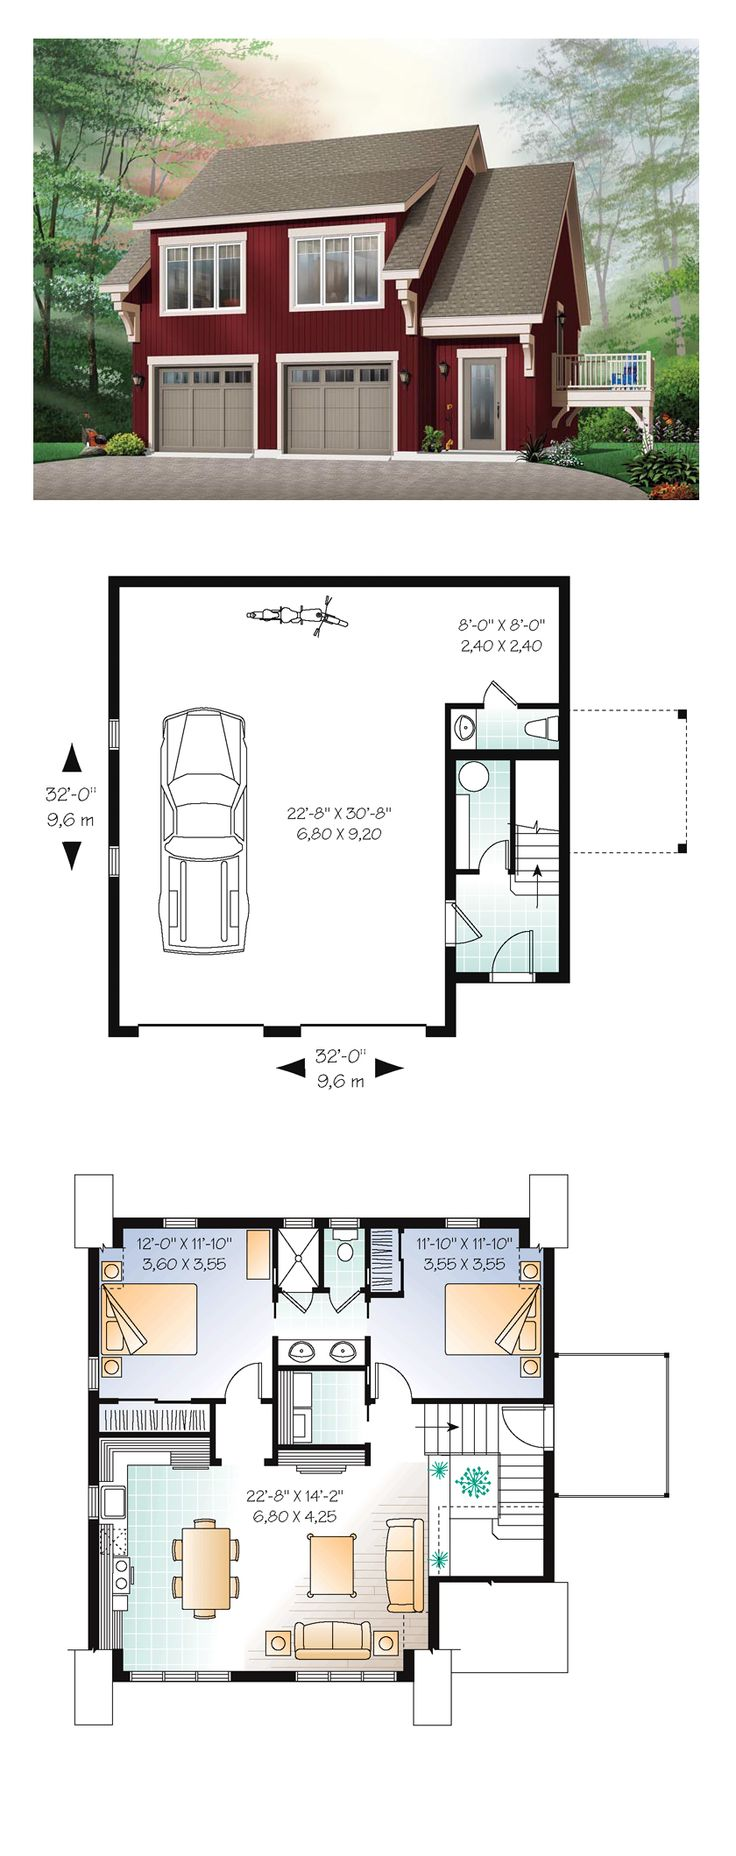 25 best ideas about garage apartment plans on pinterest for Room above garage plans